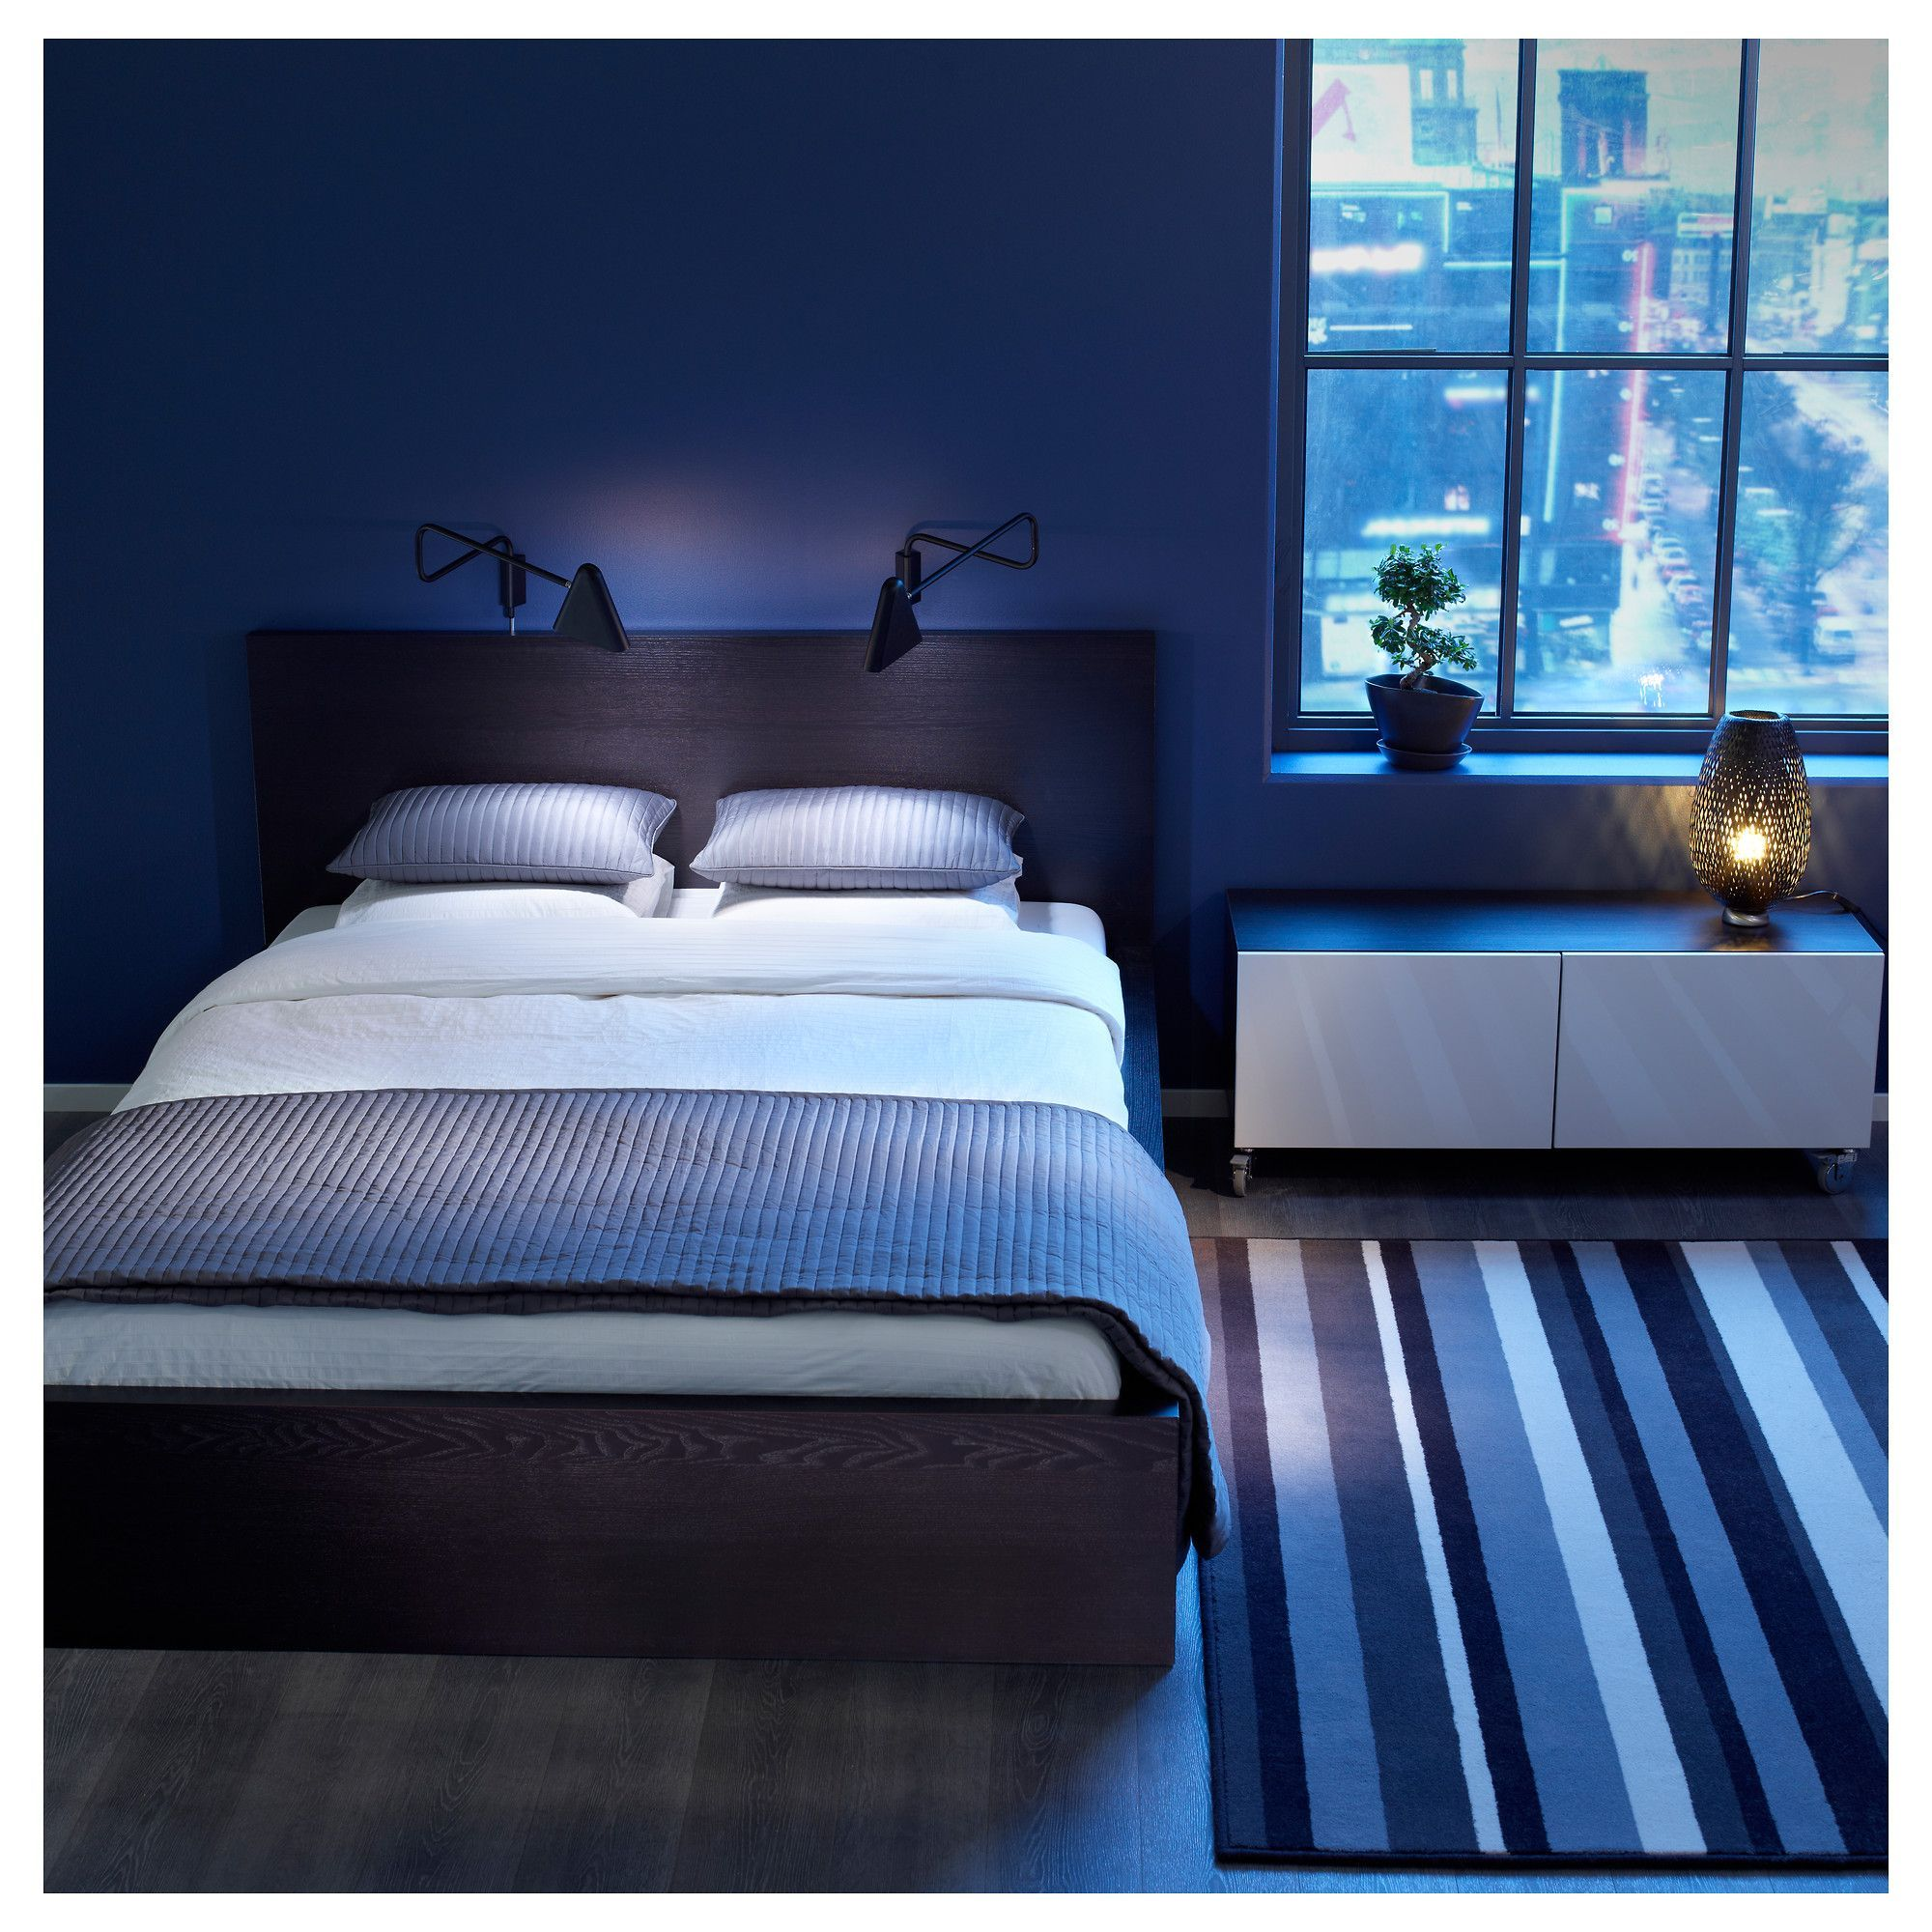 Bedroom colors for men - Simple Modern Bedroom For Men With Wooden Bed And Lighting Decorating Plus